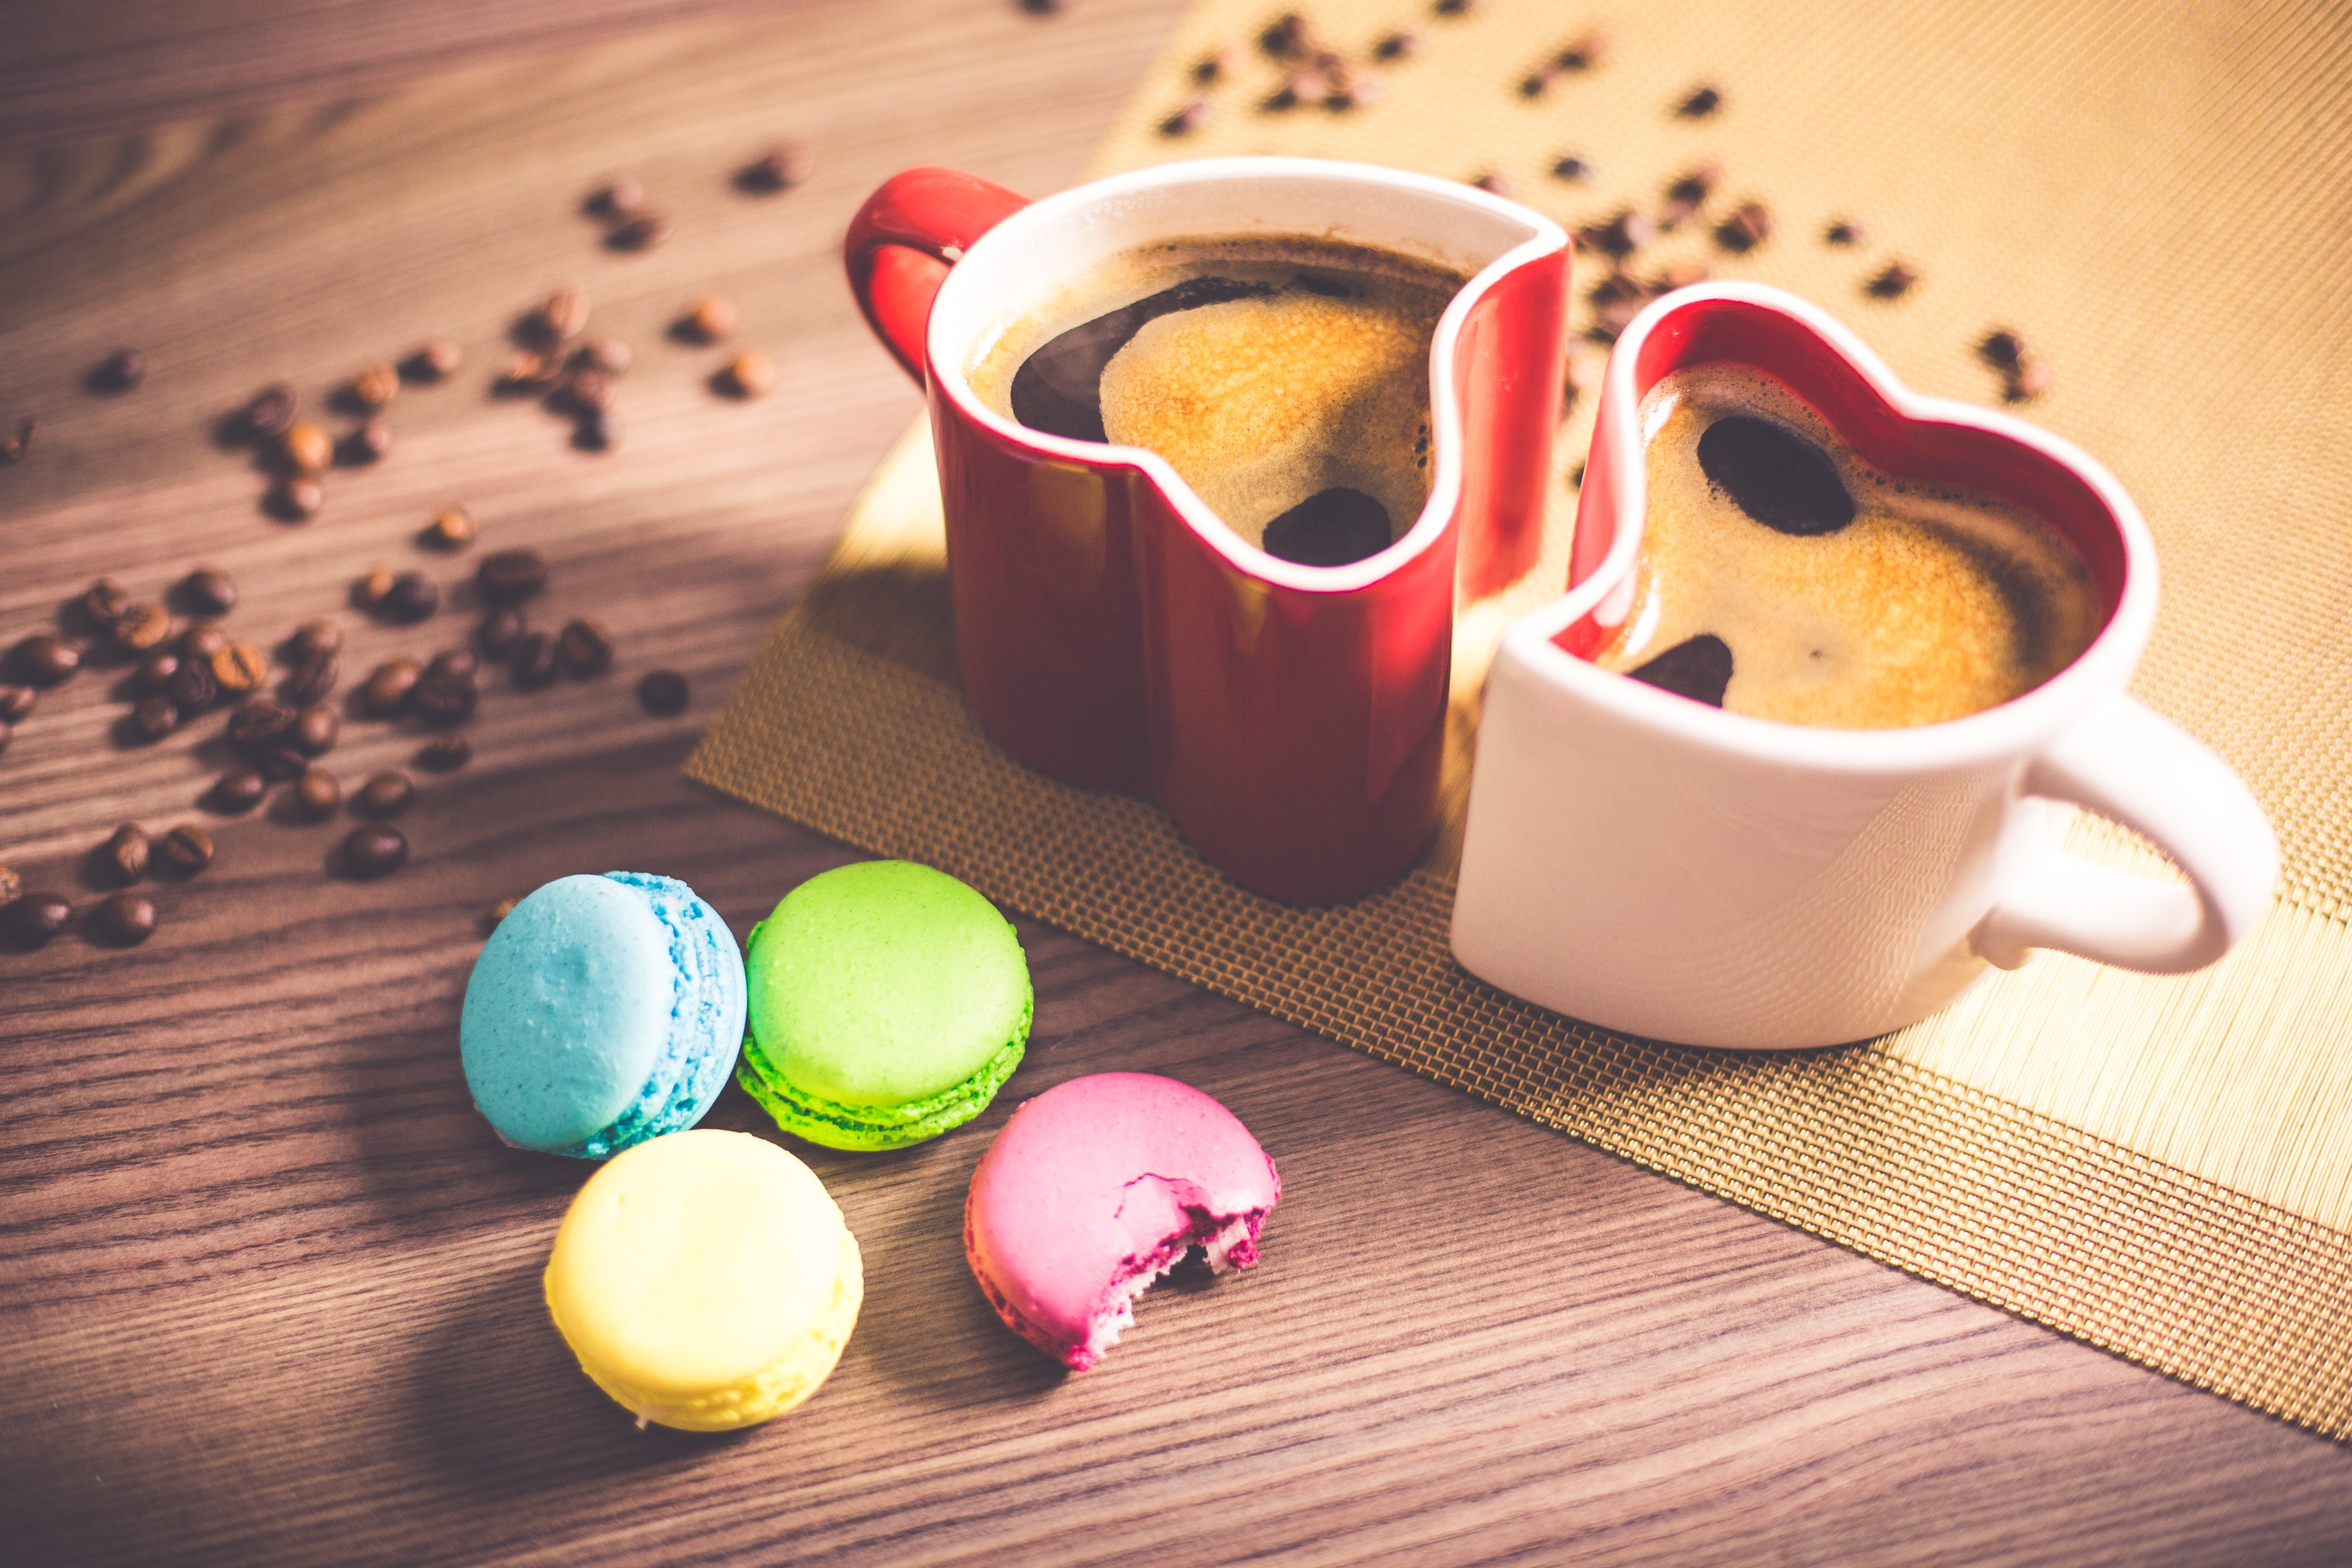 White and Red Couple Heart Mug Filled With Coffee And Macaroons, Black coffee, Food, Table, Sweets, HQ Photo